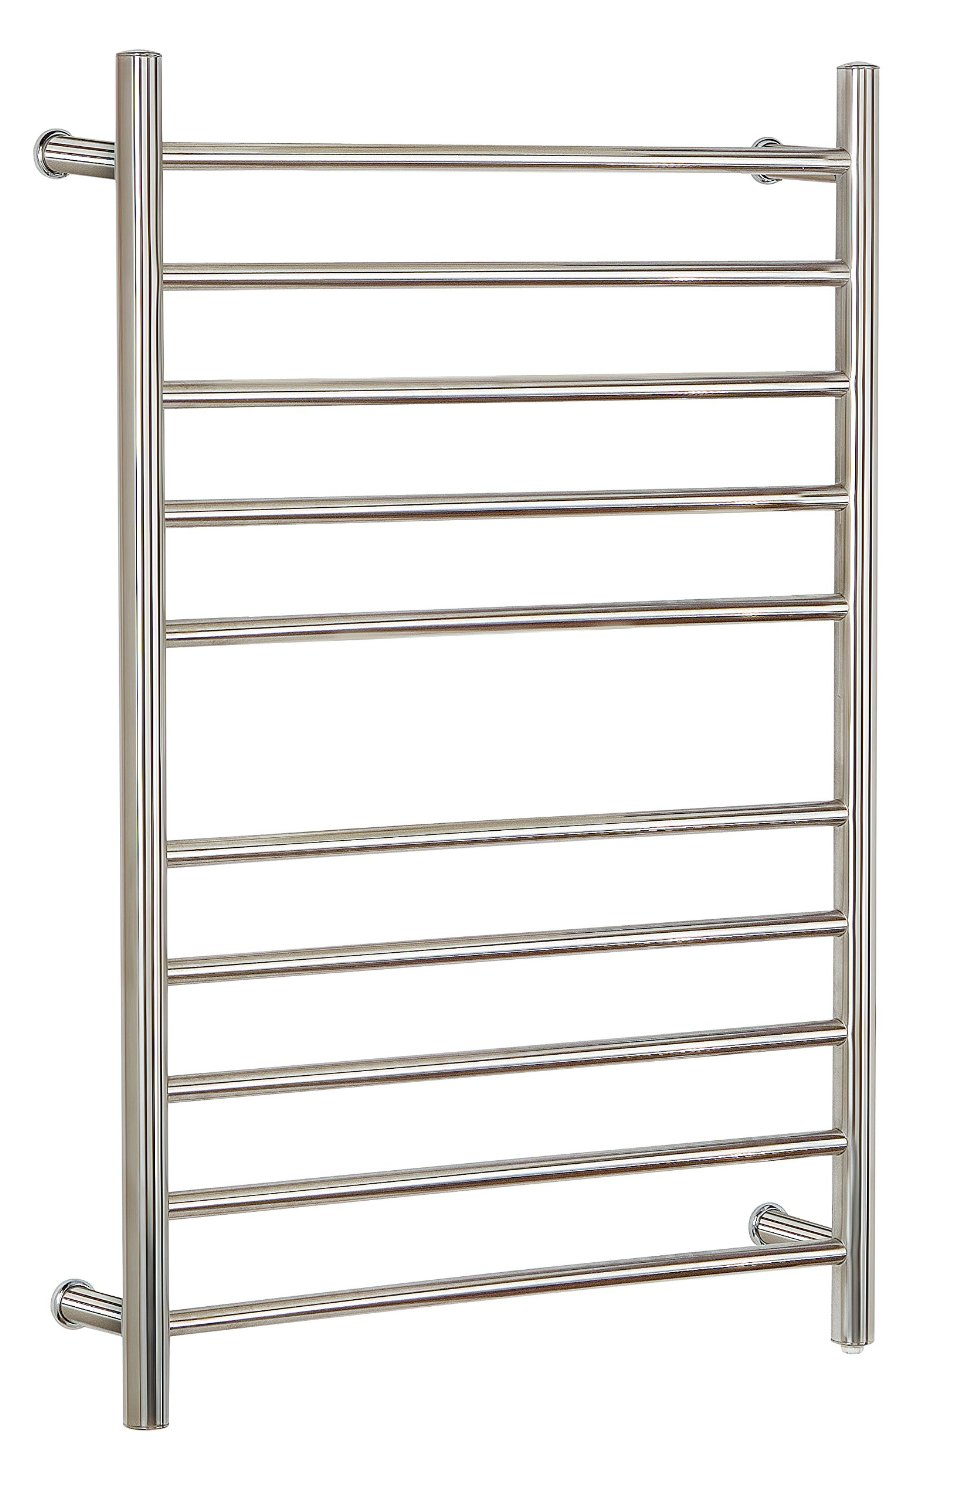 11 Best Electric Towel Warmers for 2018